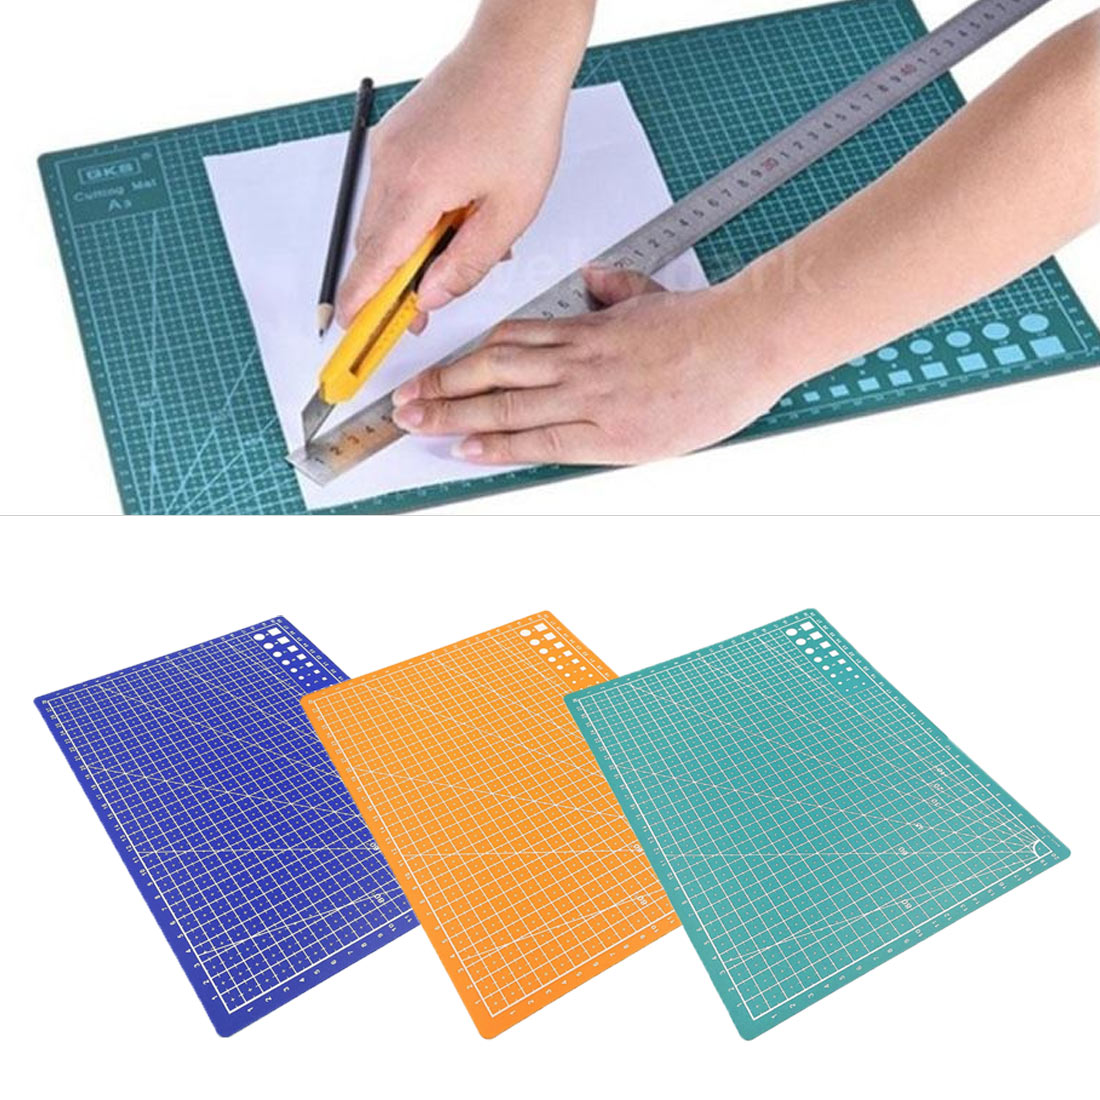 1PC A4 Grid Line Self-healing Cutting Pad Craft Card Cloth Leather Cardboard Sewing Tool